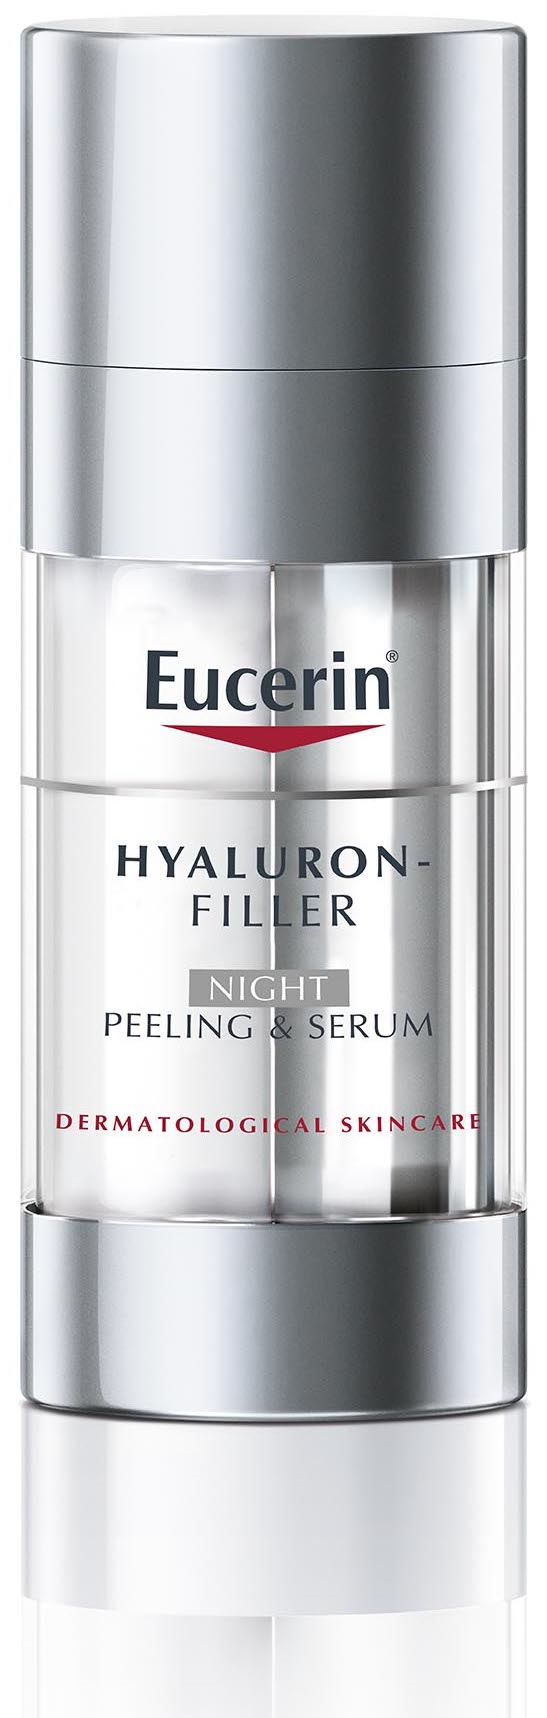 Eucerin® Launches a Skin-Care Innovation with Dual-Efficacy